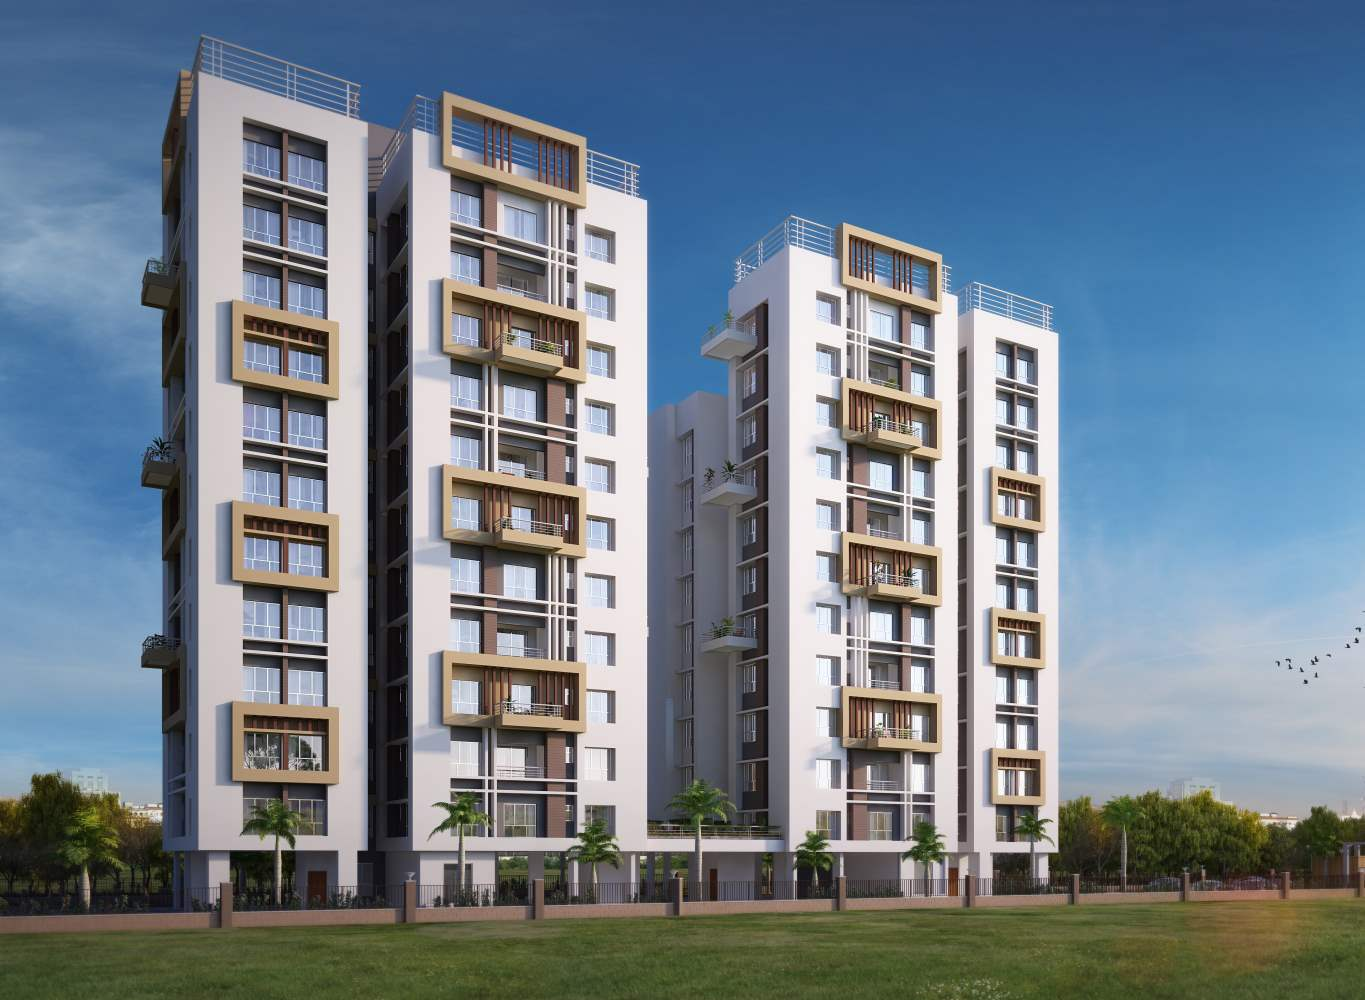 Eden tolly signature plus flats in kolkata for sale for Modern high rise building design